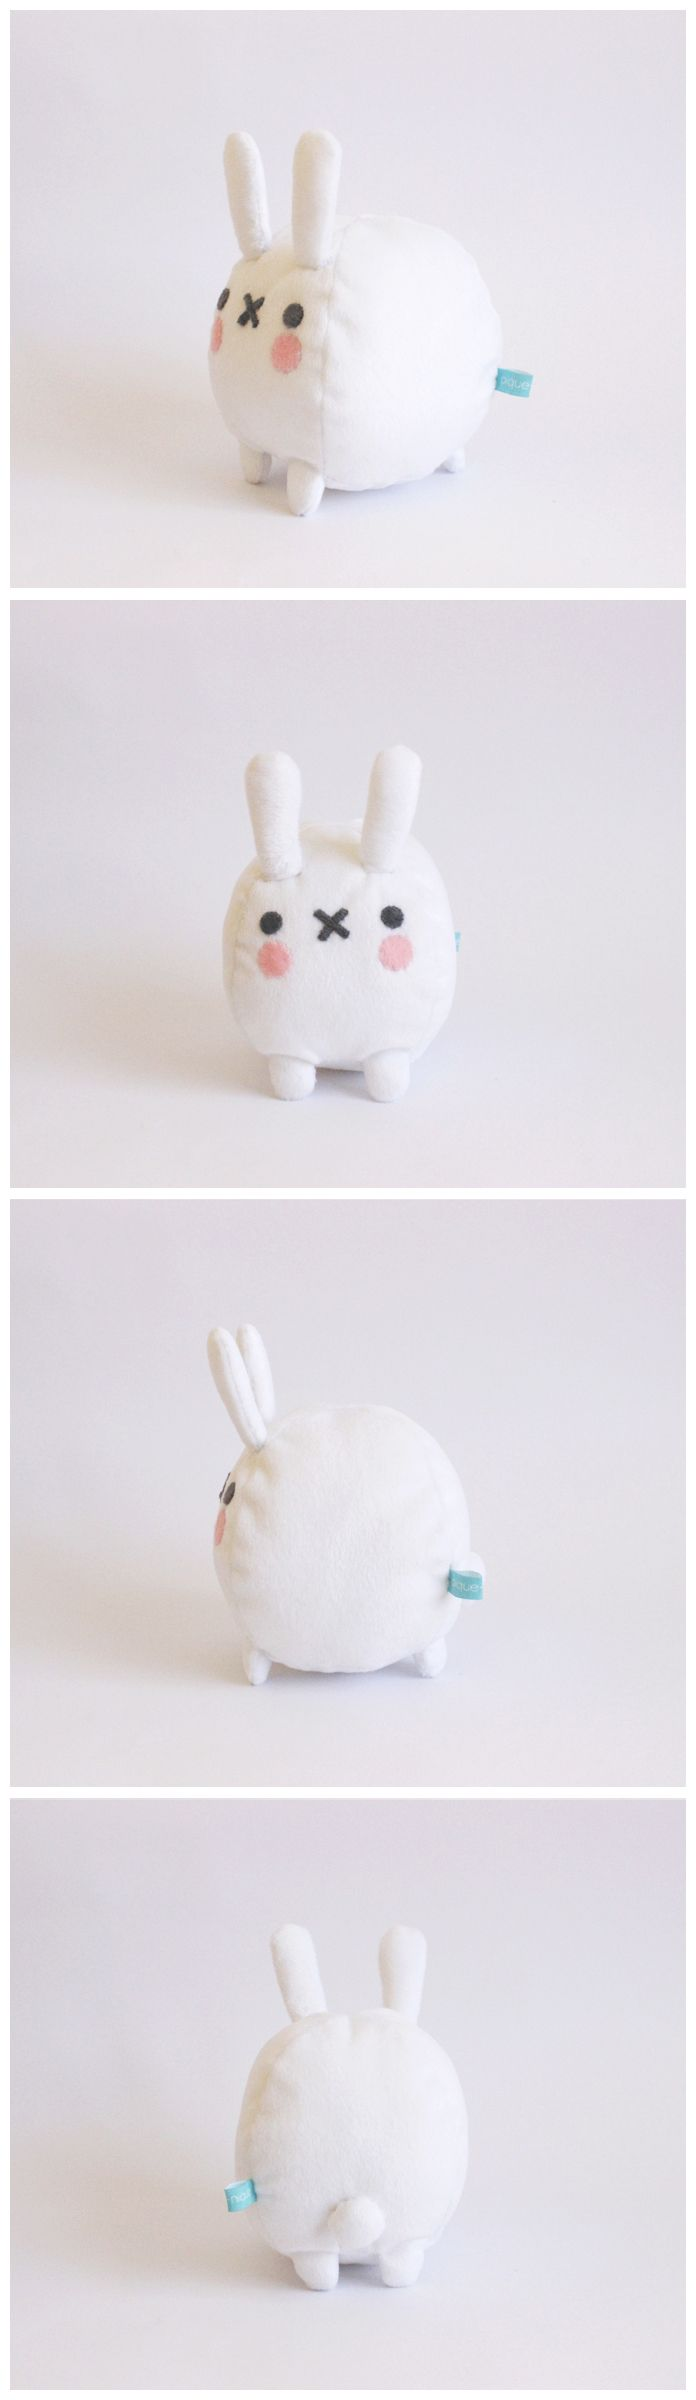 """Hehehe~ The little """"x"""" mouth always makes it look like the bunny has eaten something sour!"""